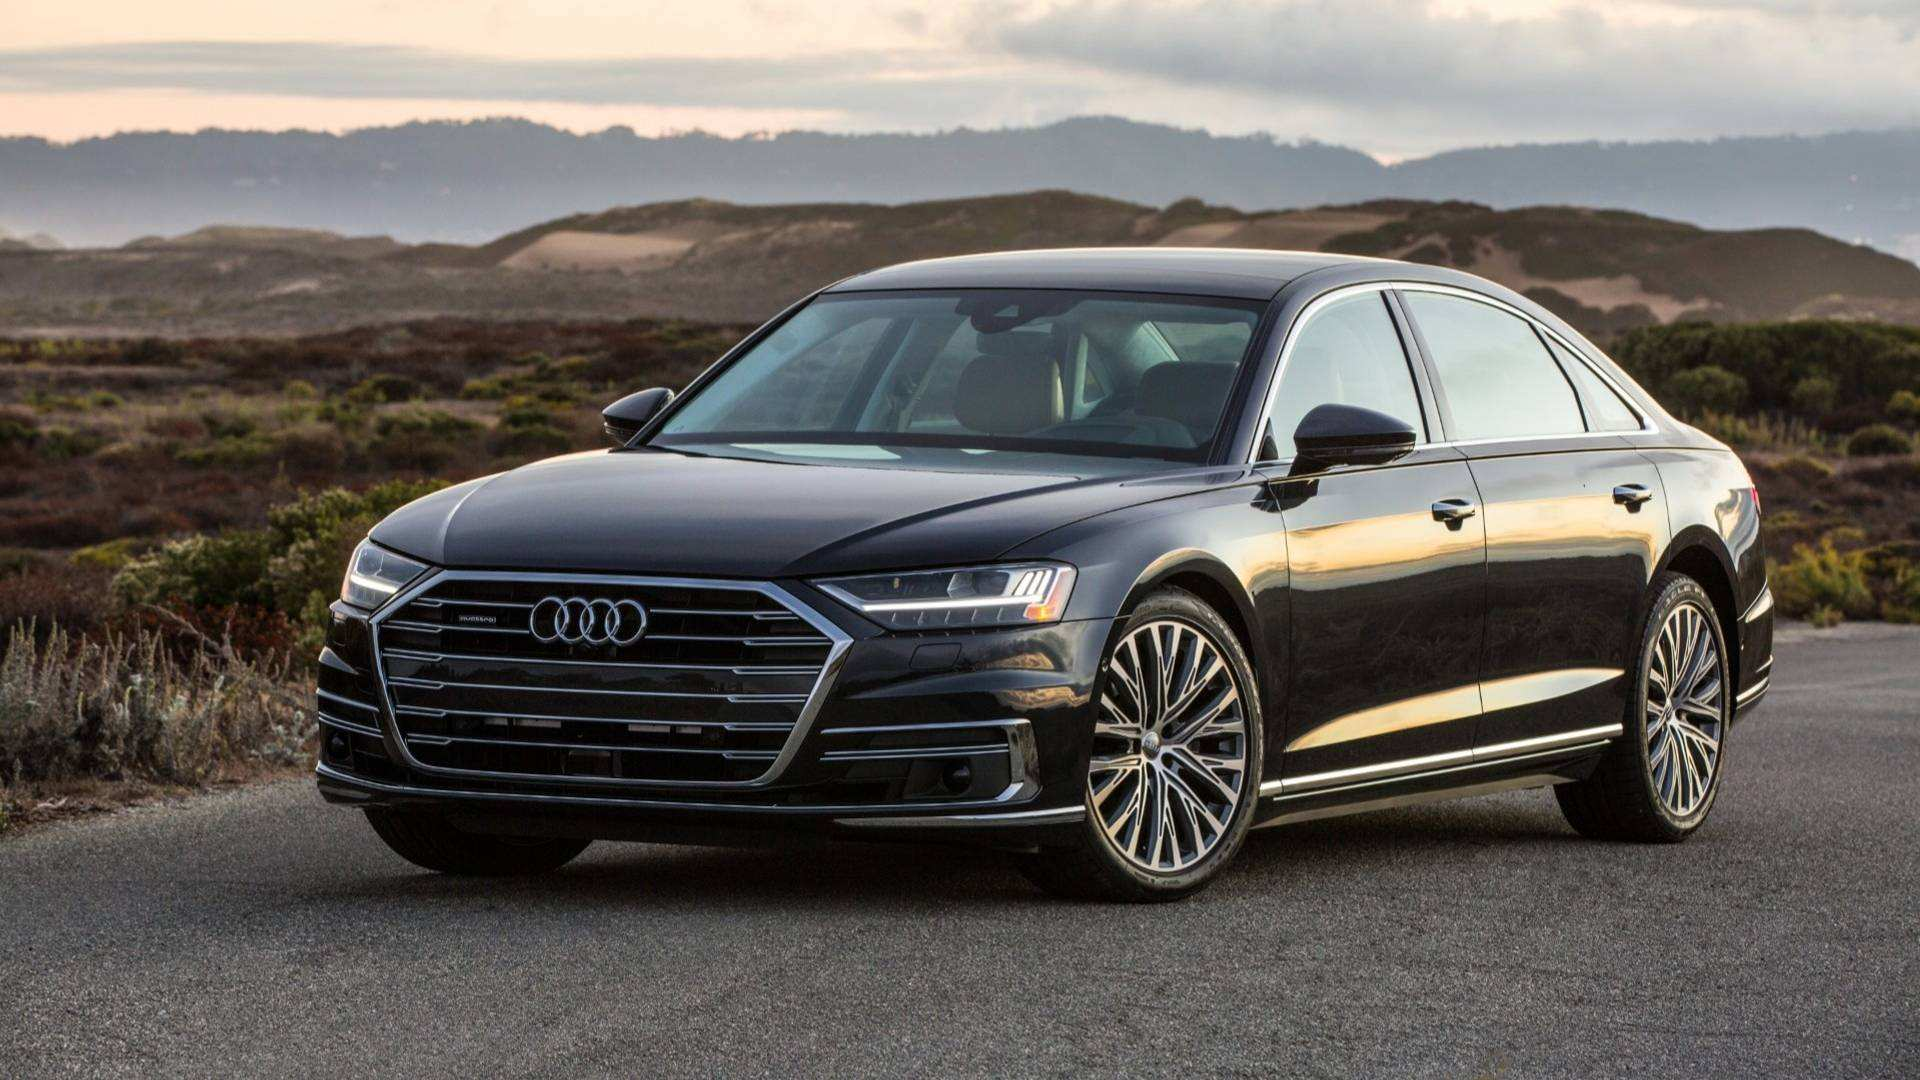 57 The Best 2019 Audi A8 L In Usa Interior